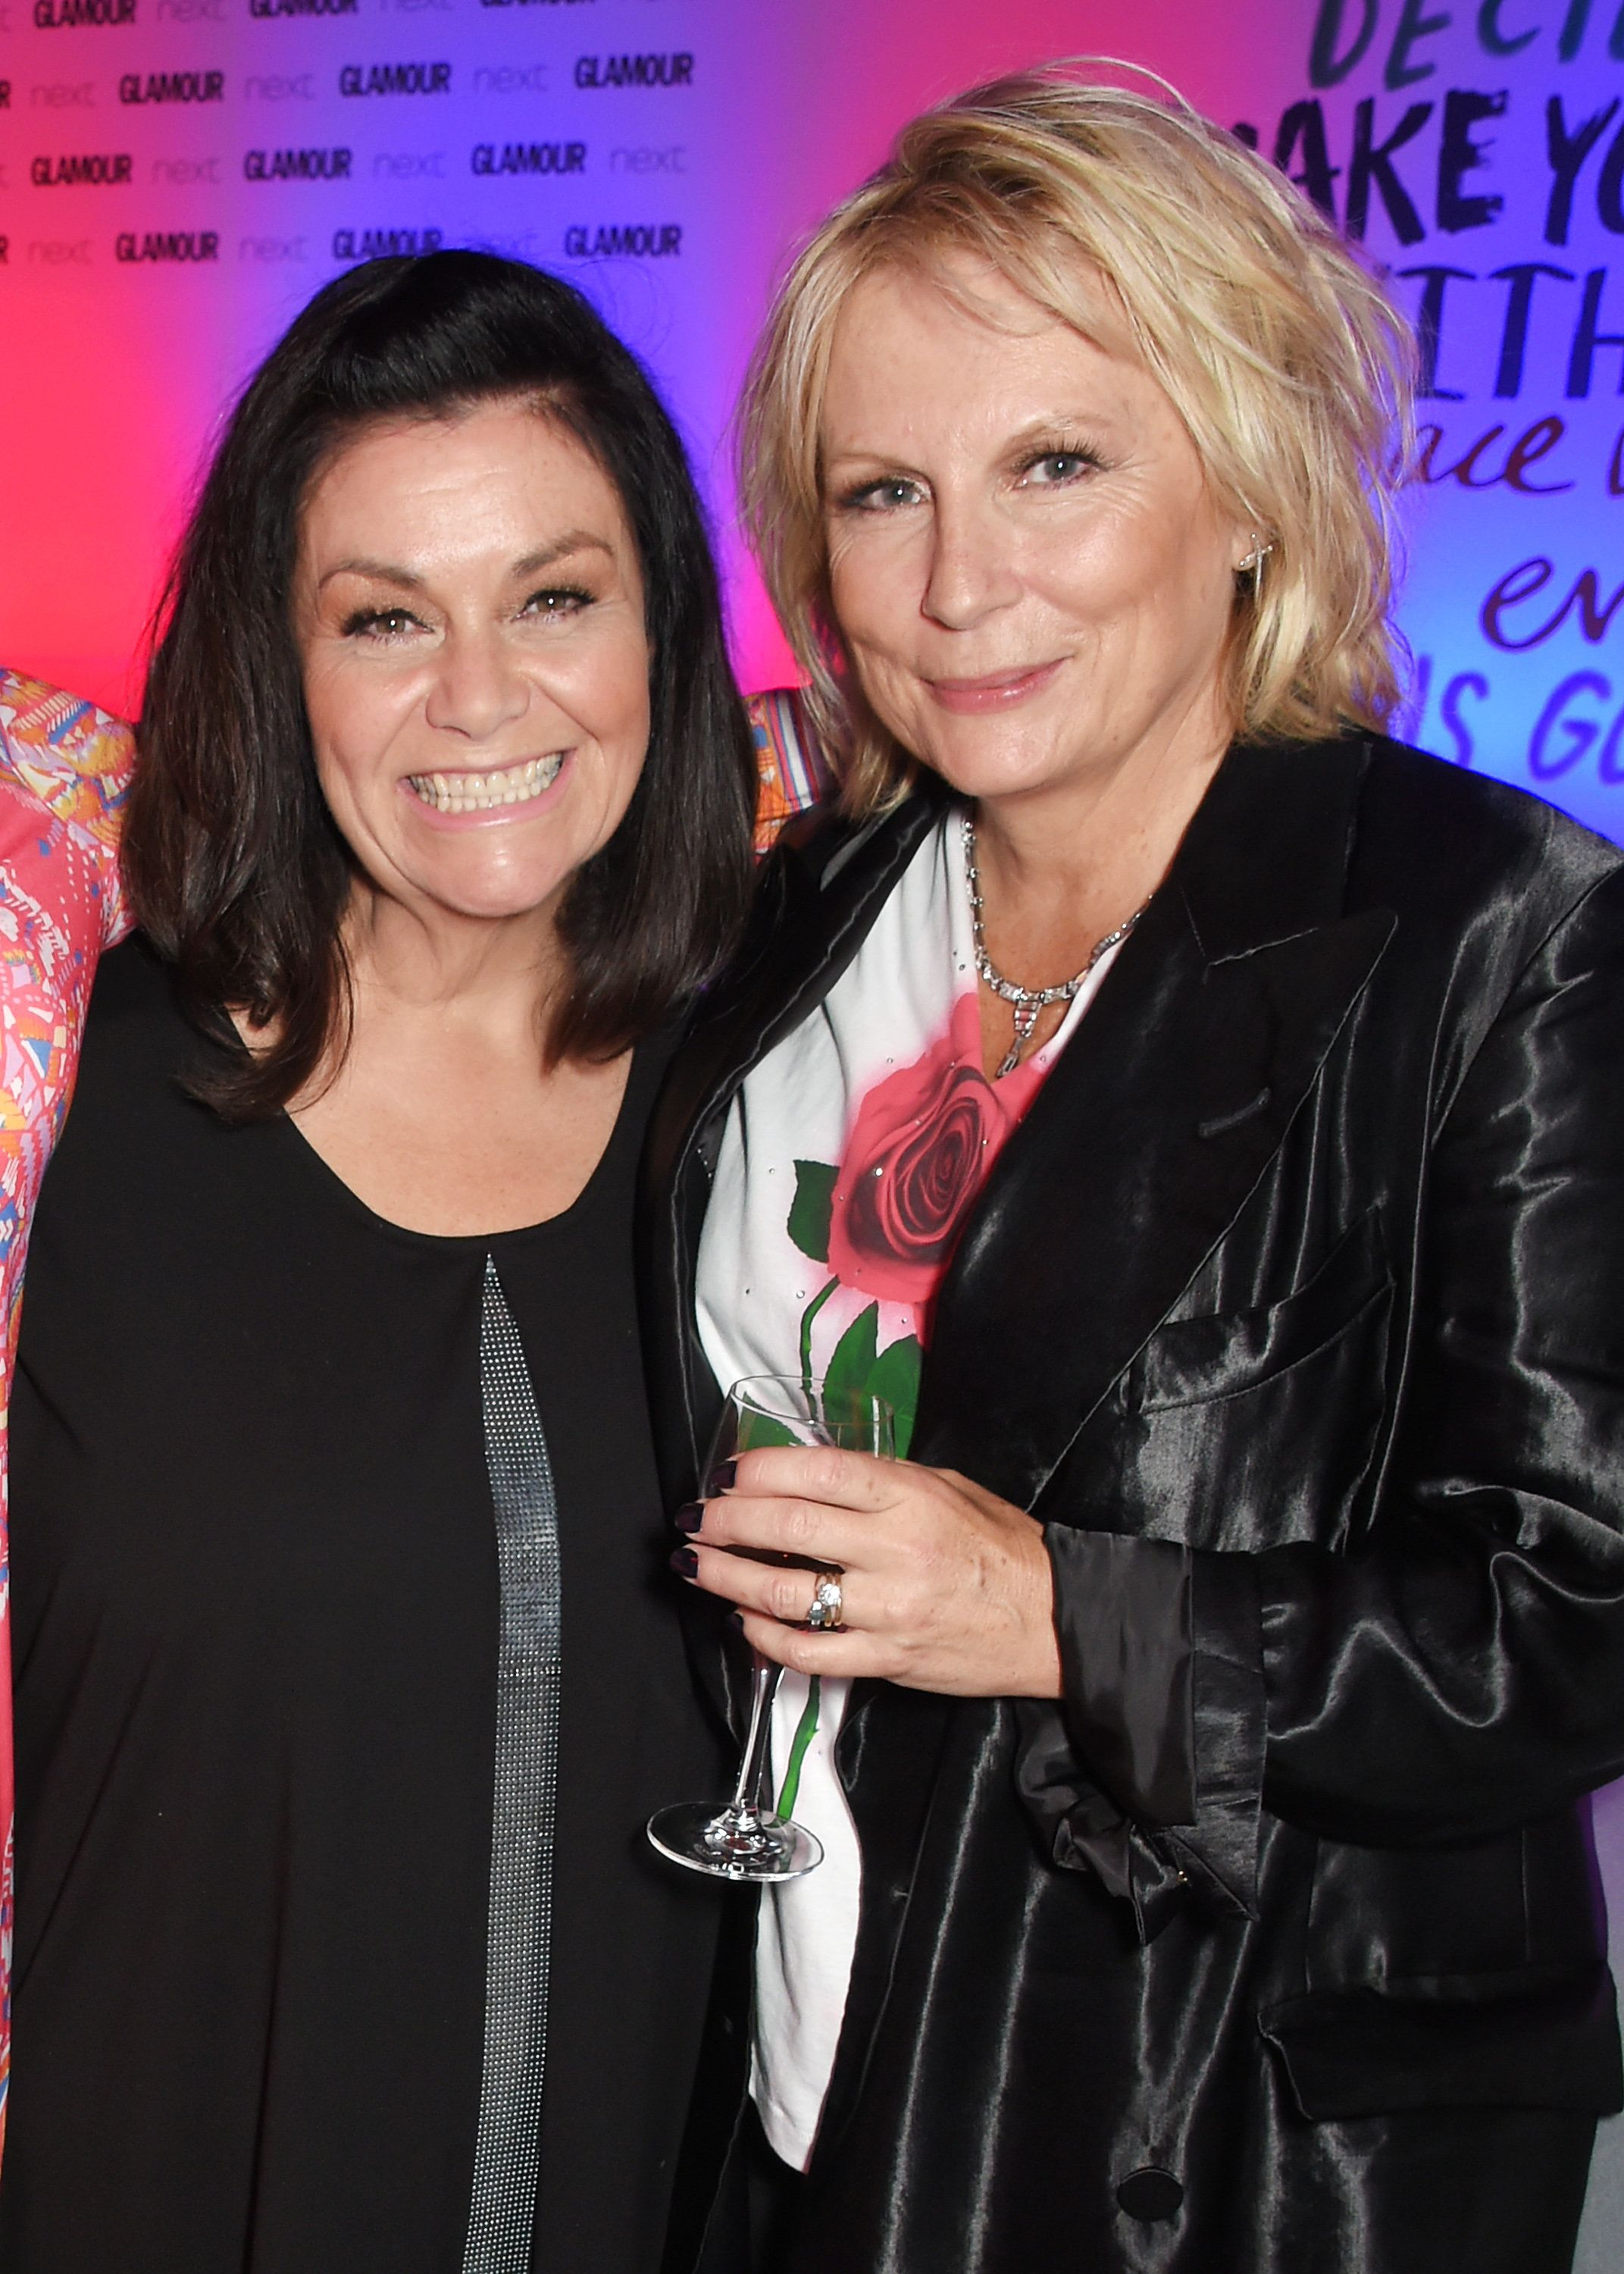 Dawn French and Jennifer Saunders laid into Donald Trump at the Glamour